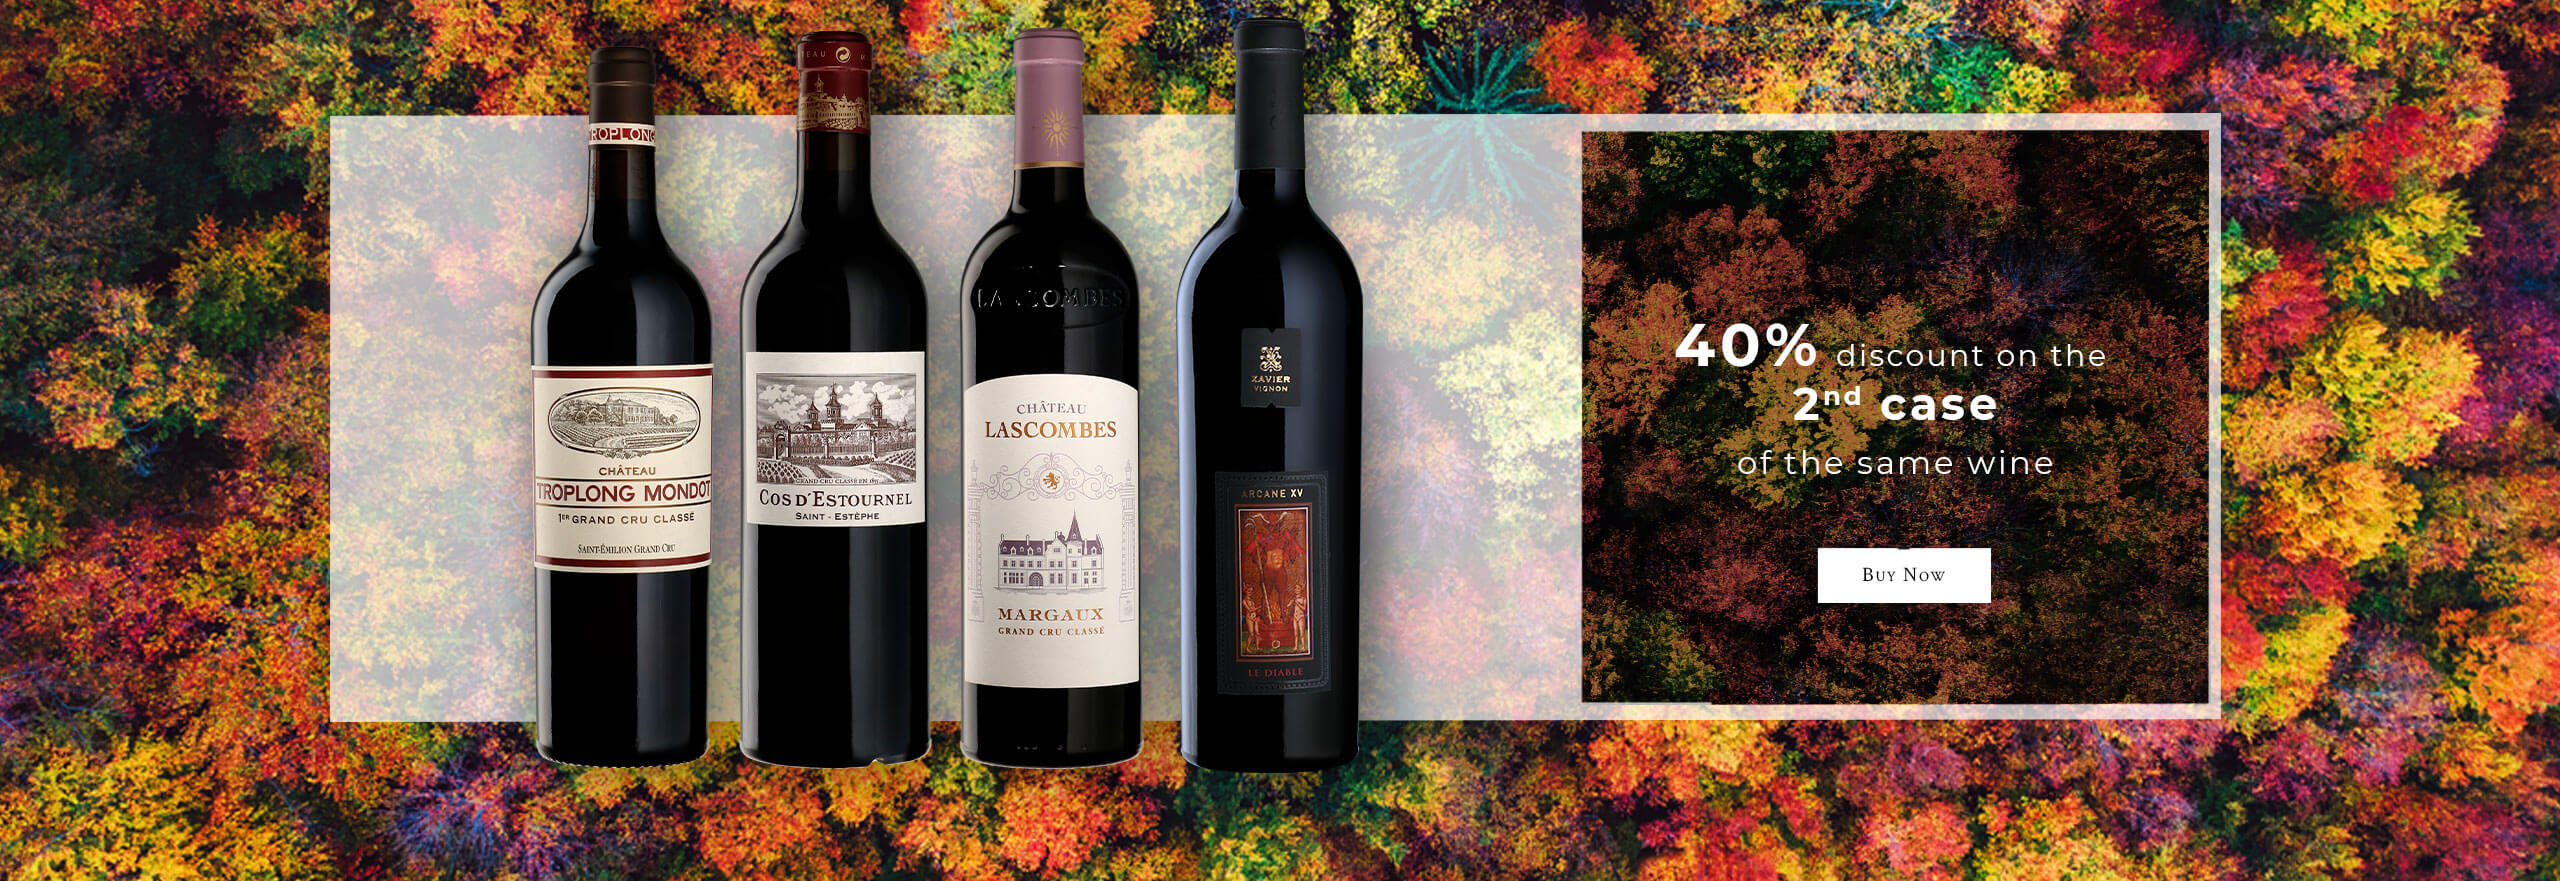 40% off the 2nd case of the same wine